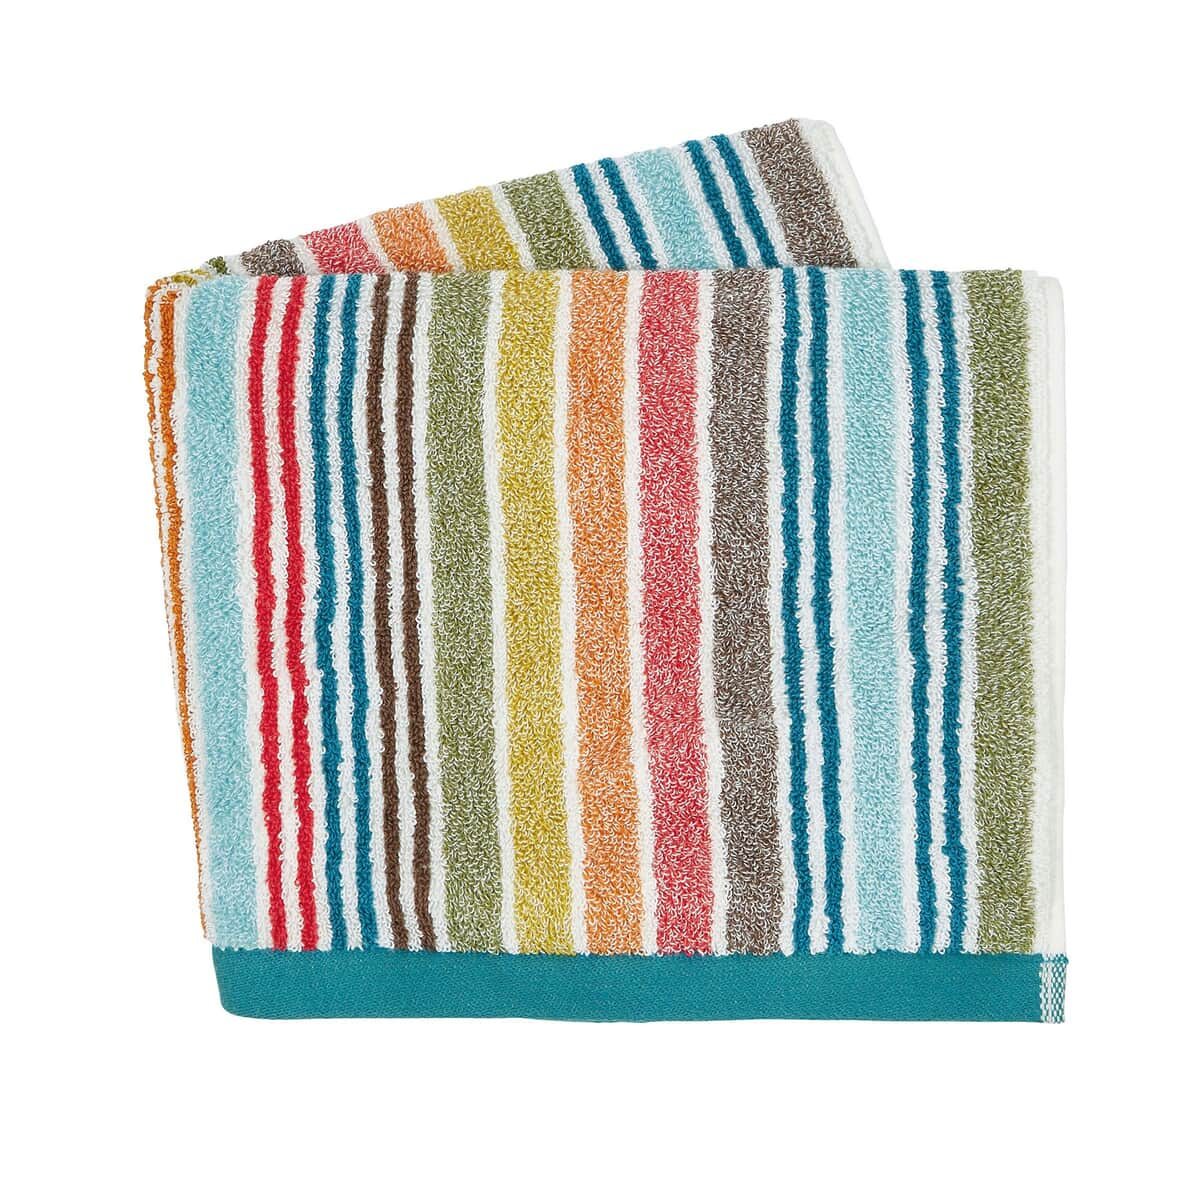 Helena Springfield Macaw Towels large